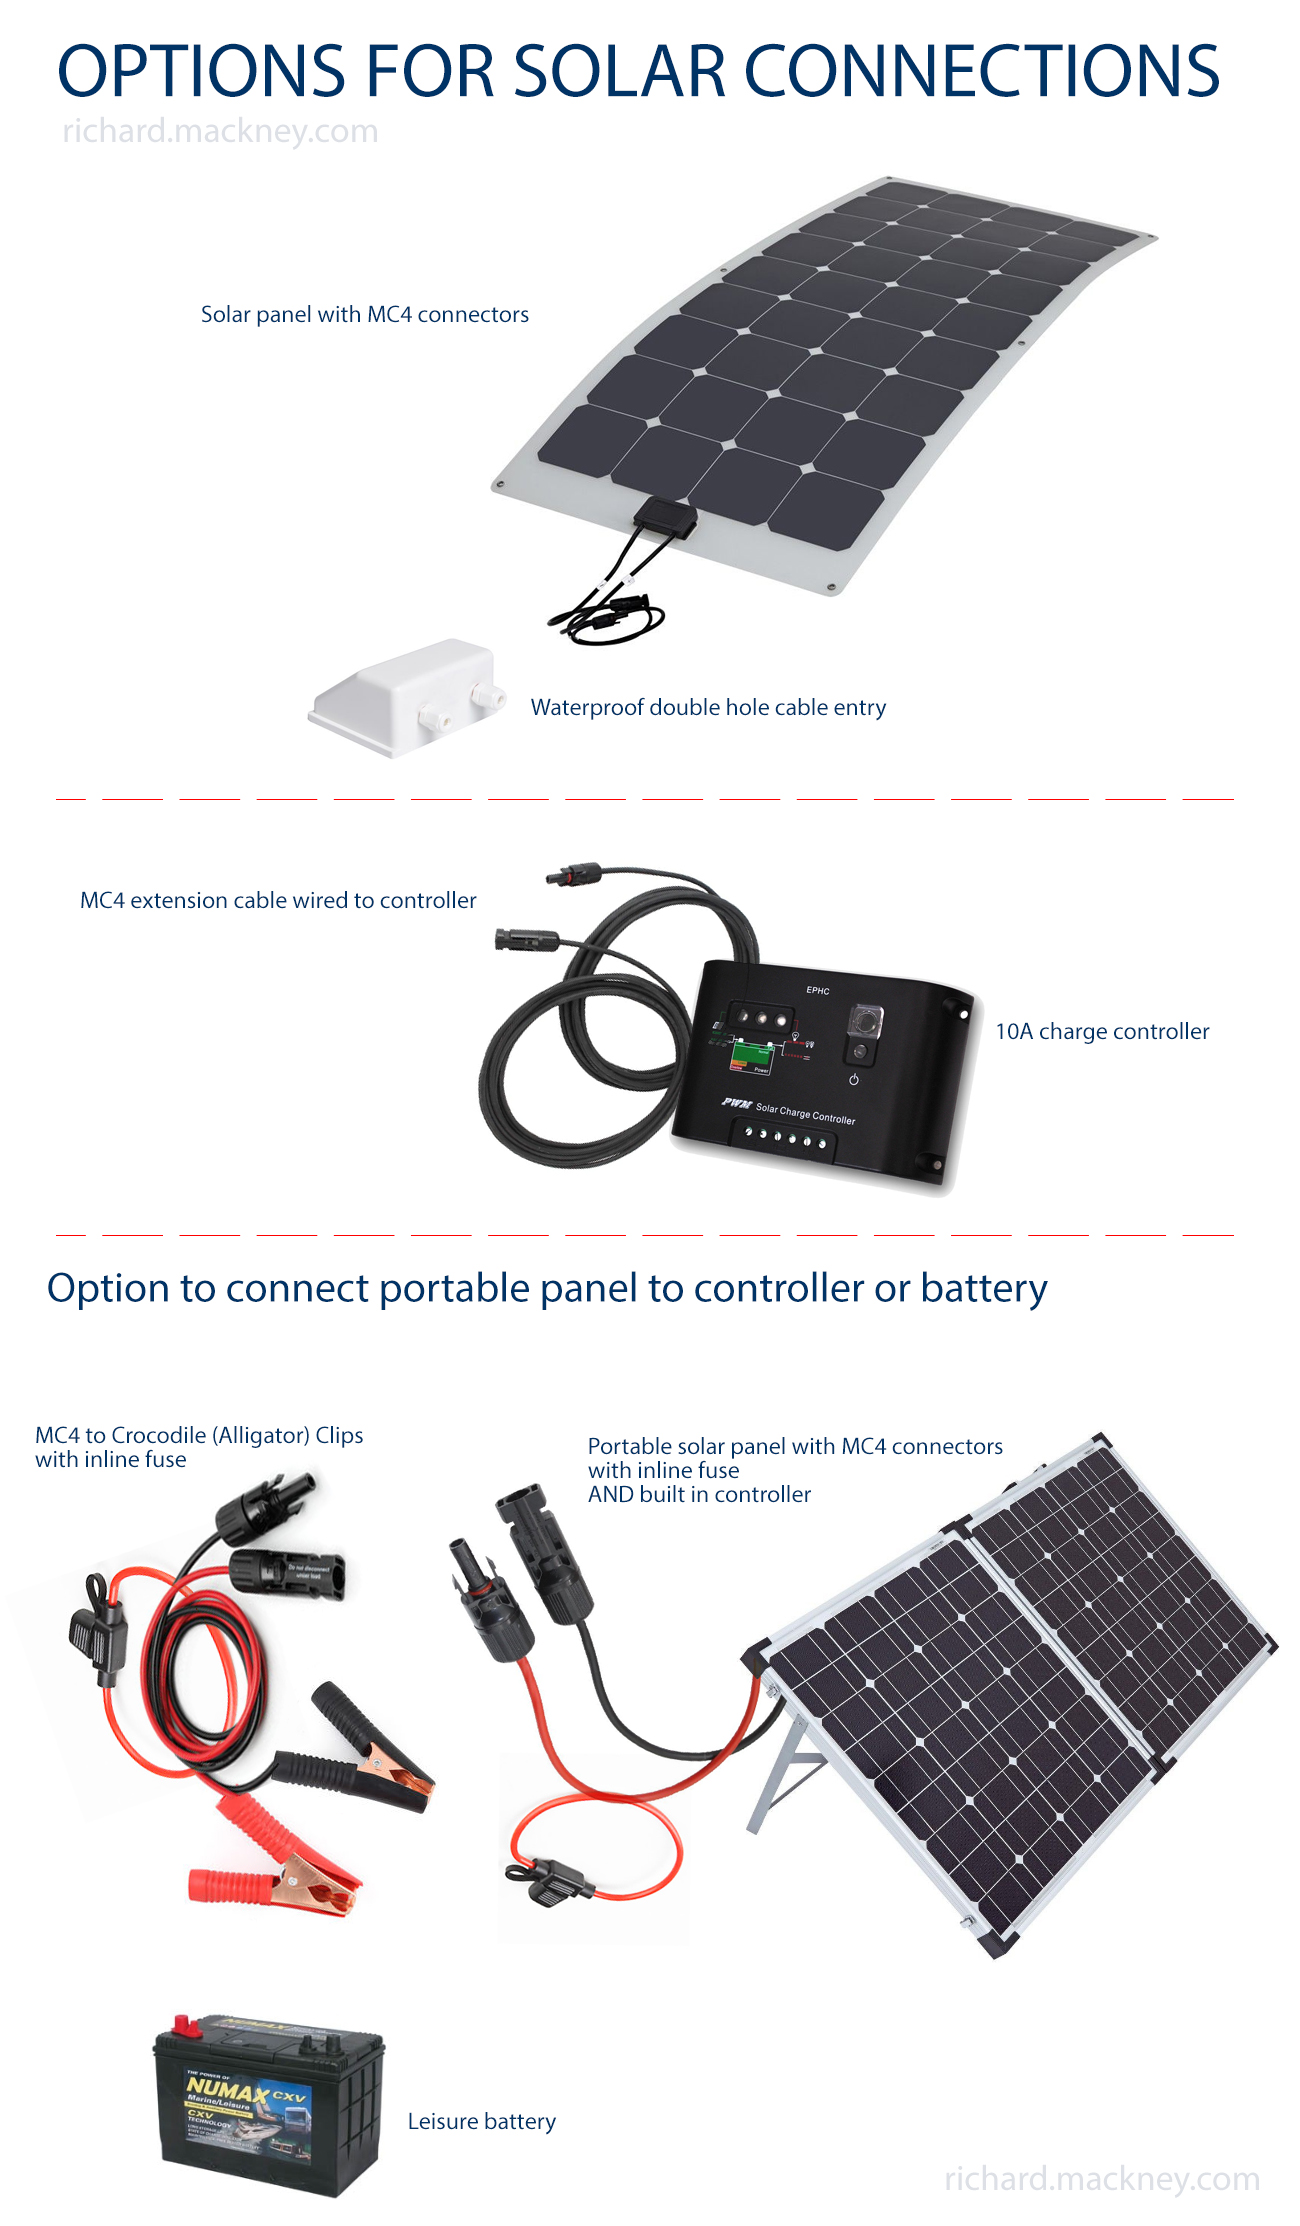 OPTIONS TO CONNECT SOLAR PANEL